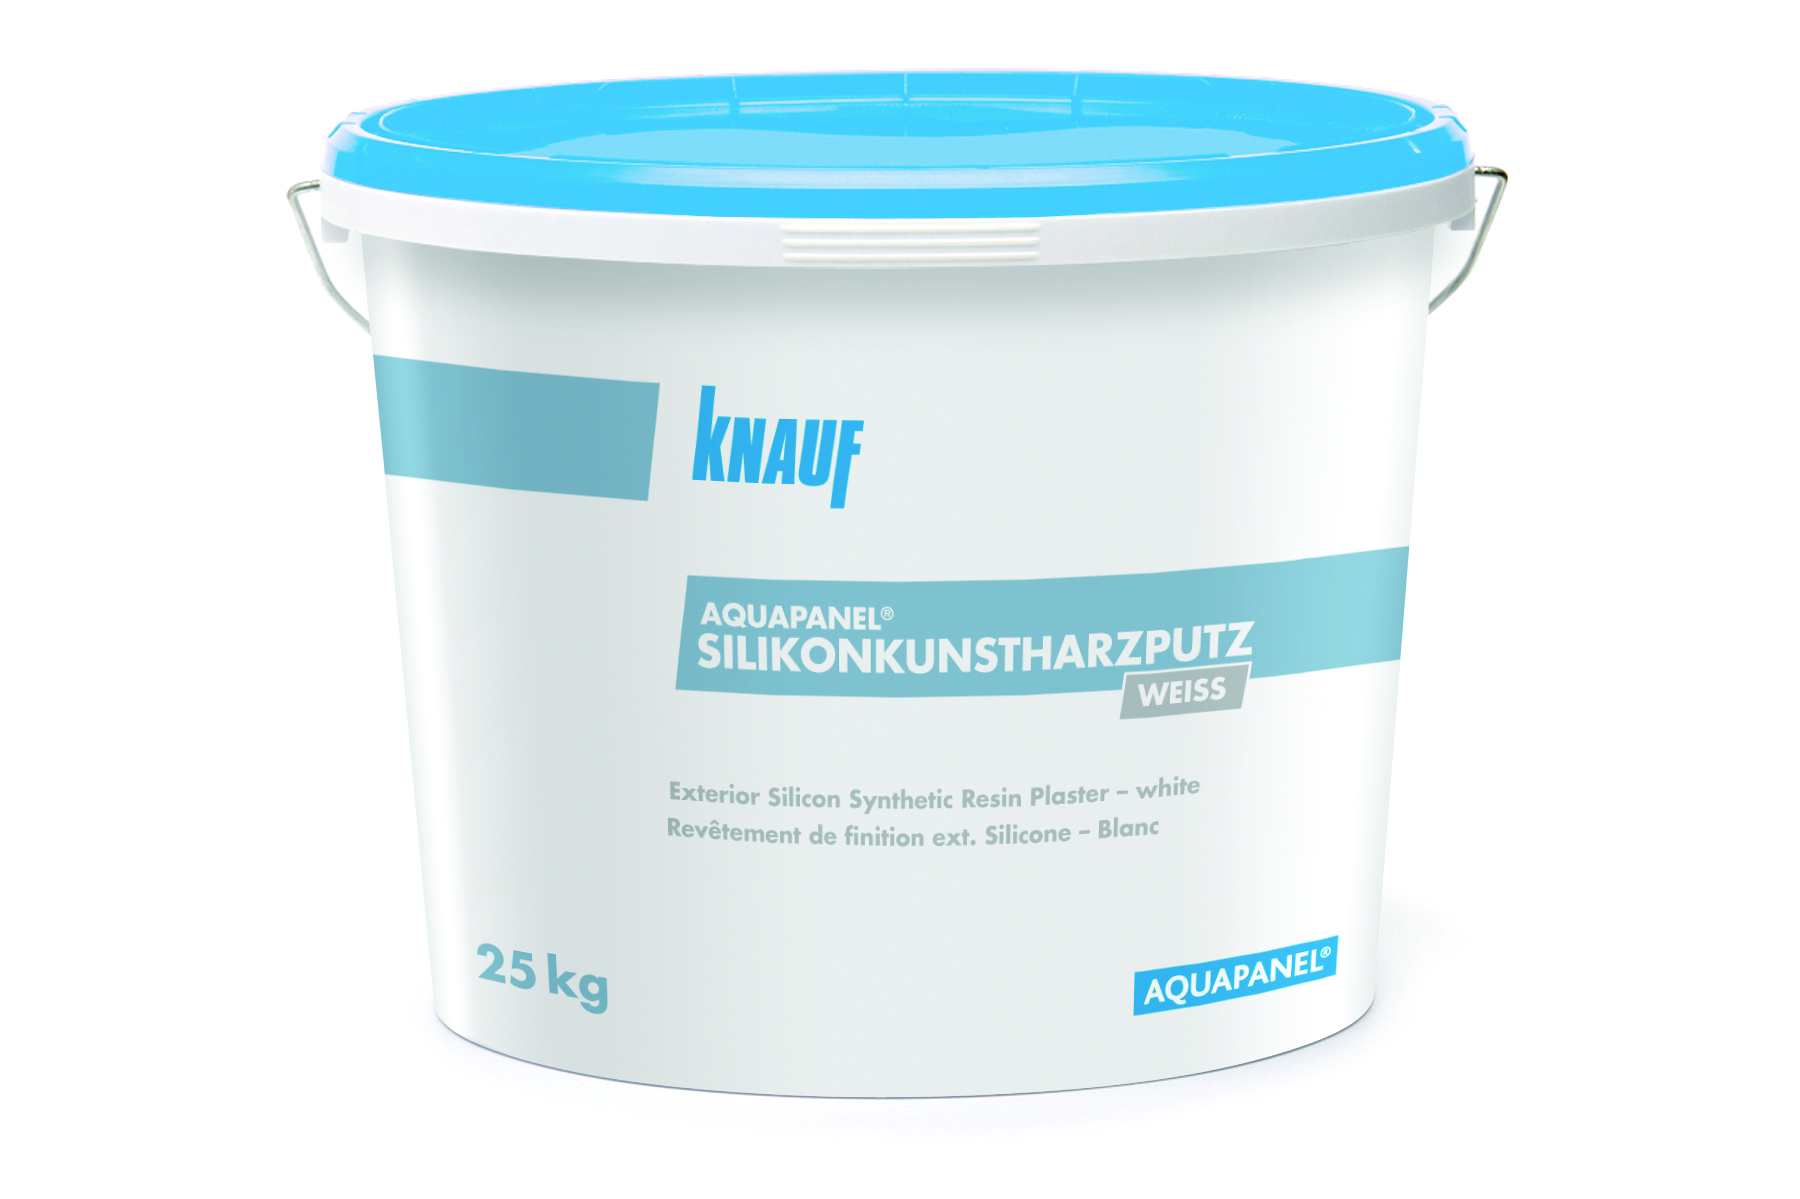 AQUAPANEL® Exterior Silicon Synthetic Resin Plaster